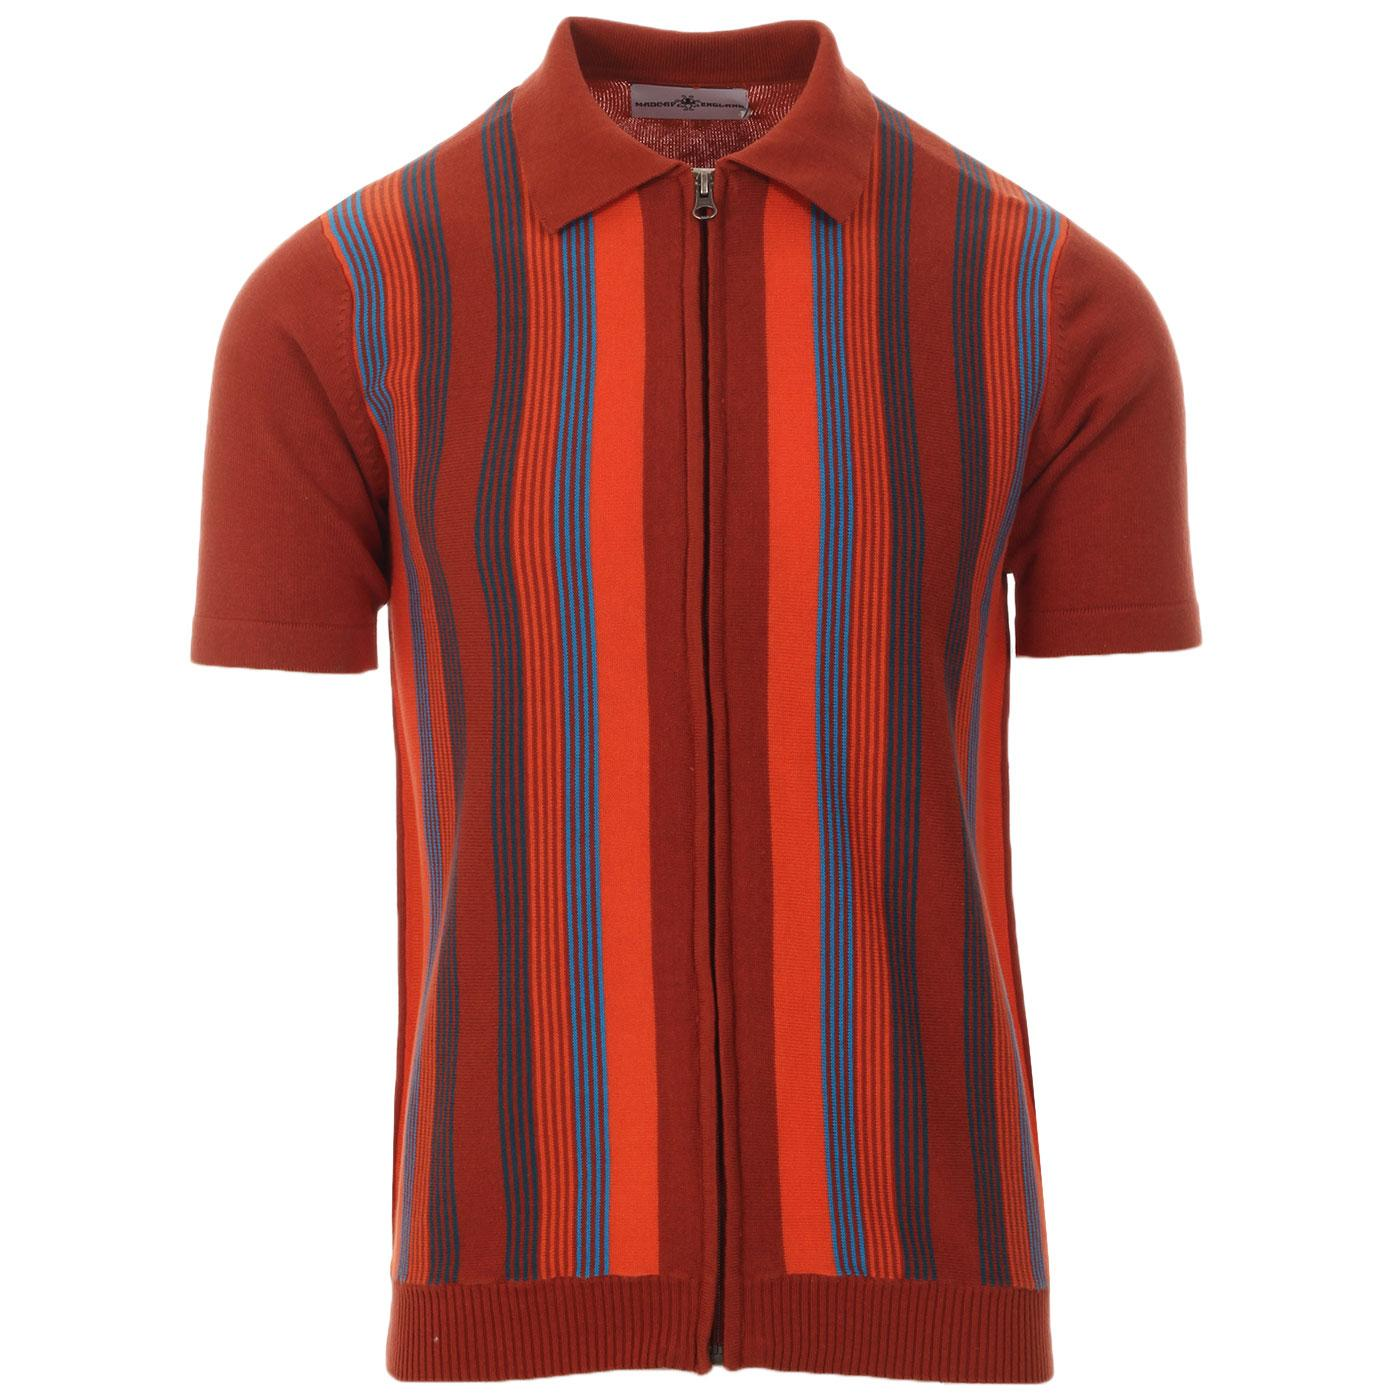 Madcap England Capitol Men's 1960s Mod Multi Stripe Knitted Zip Through Polo Top in Picante